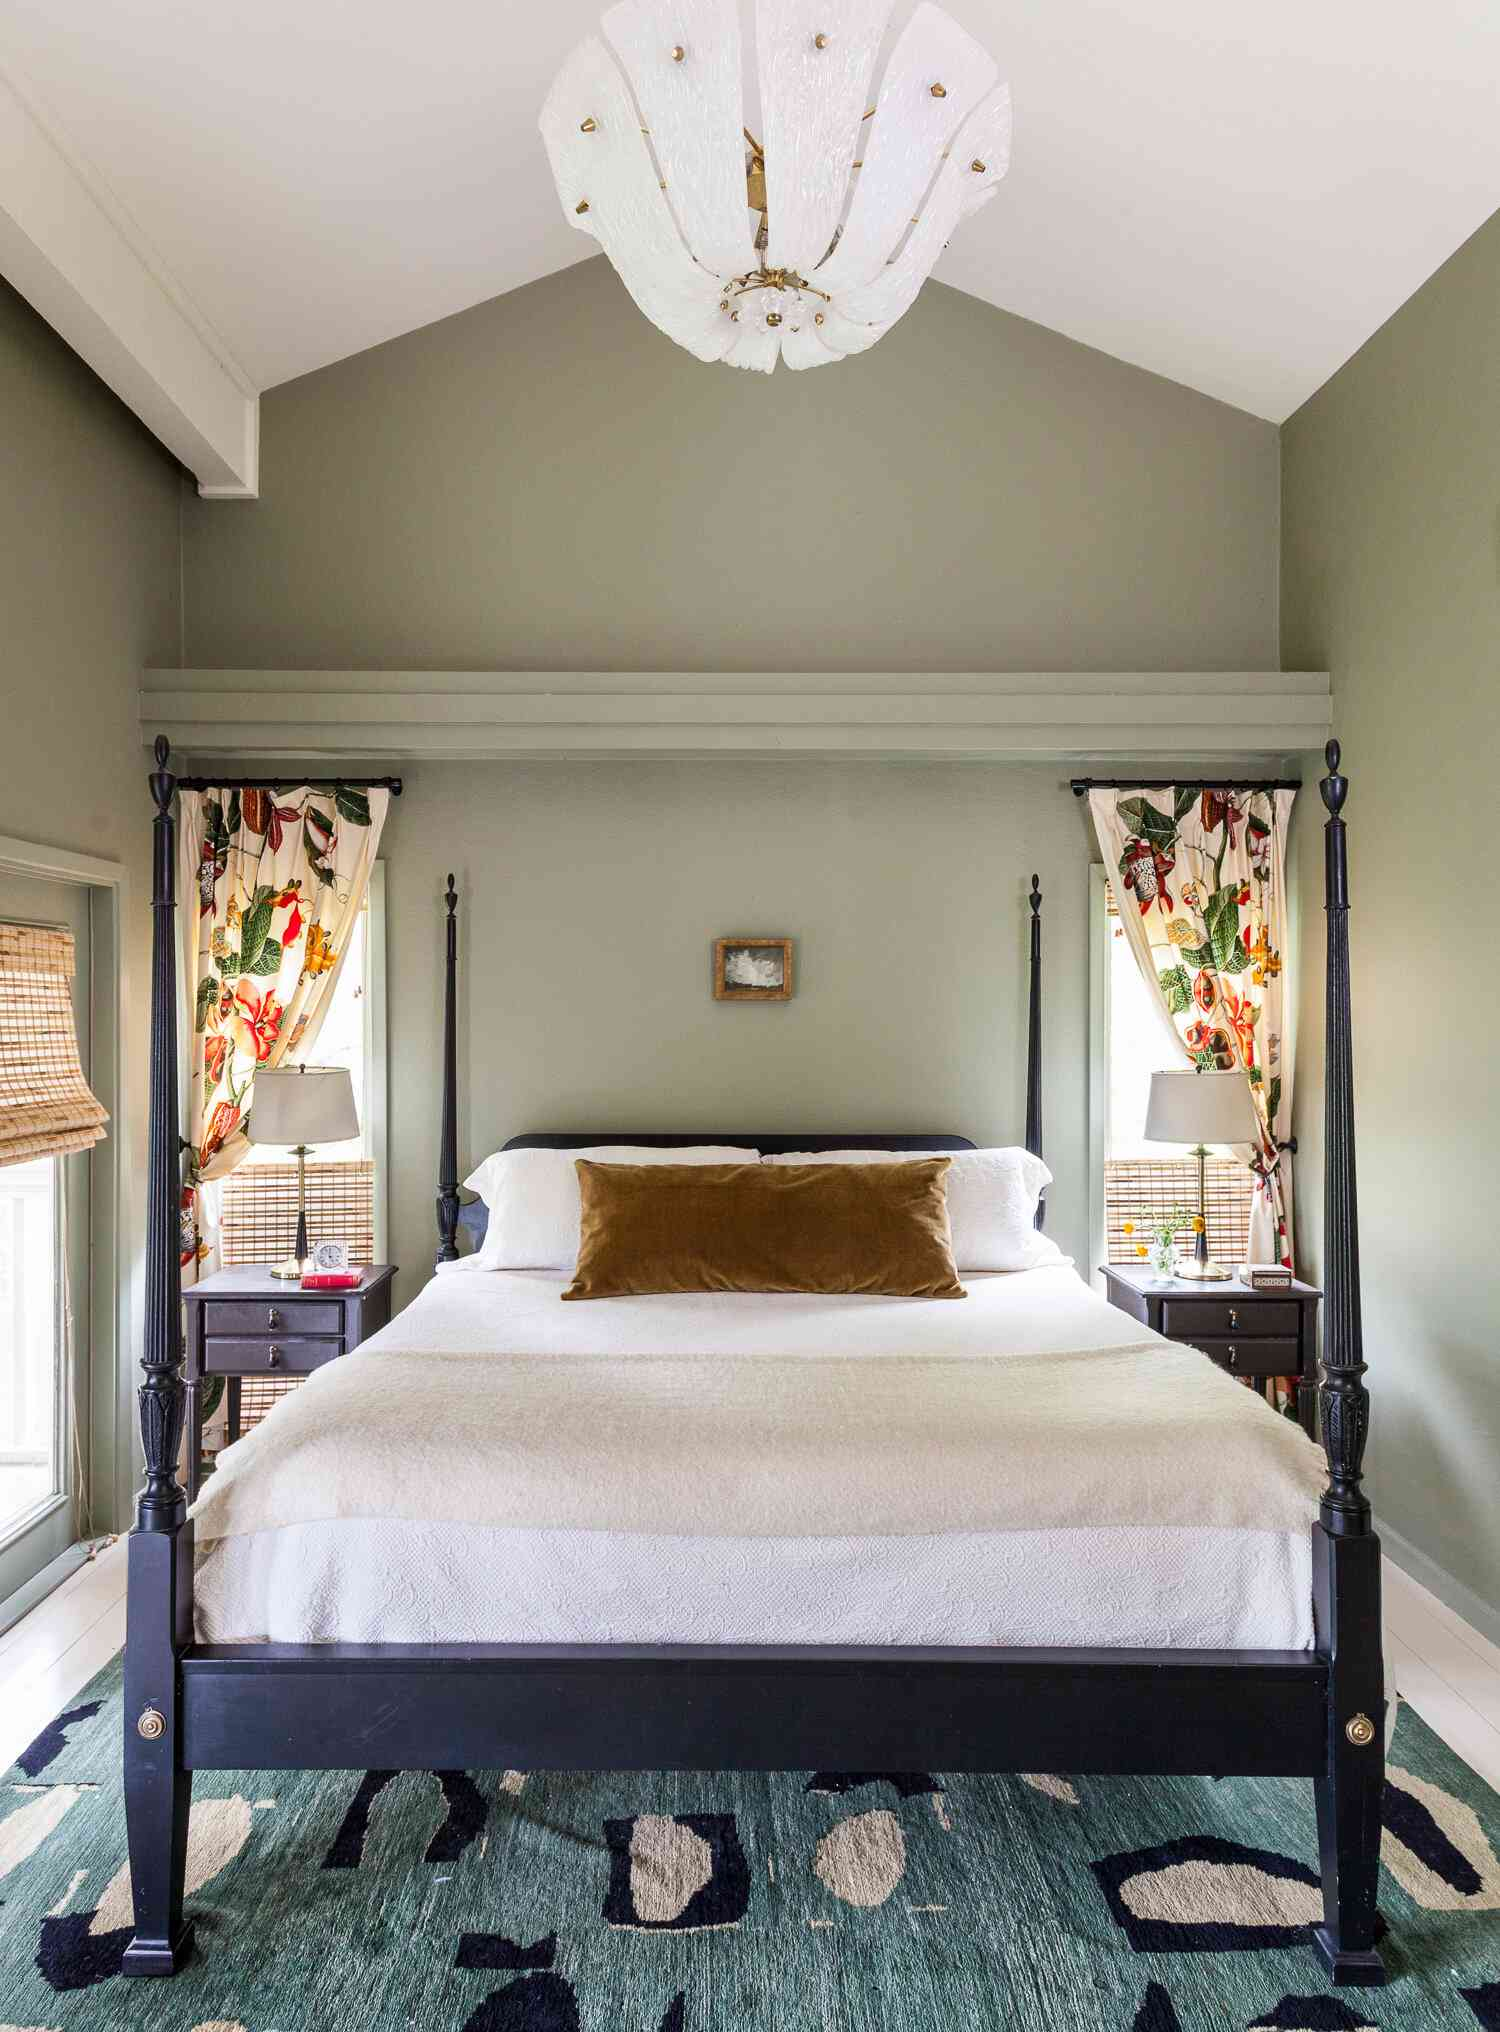 A bedroom with bold floral curtains